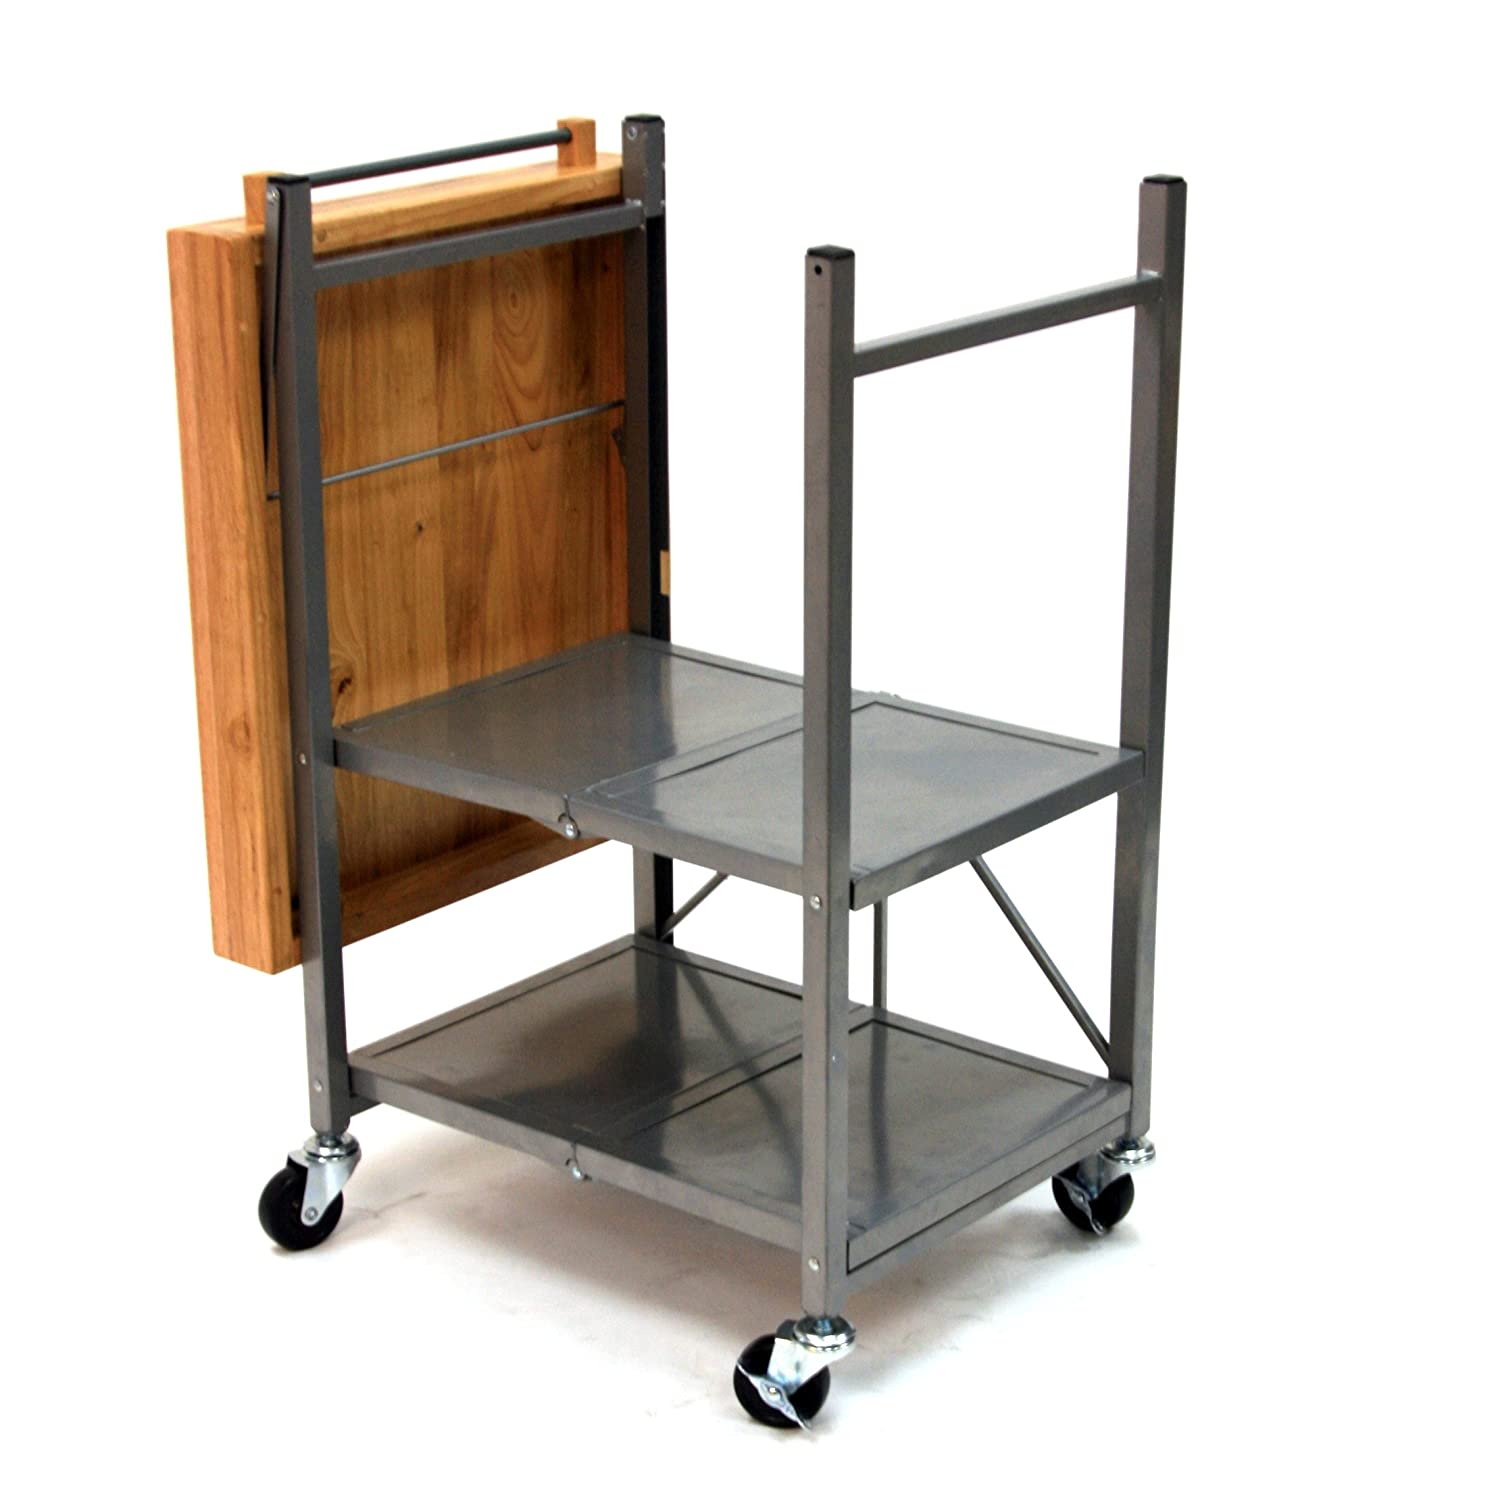 Origami RBT 02 Kitchen Cart Kitchen Storage Carts Amazon